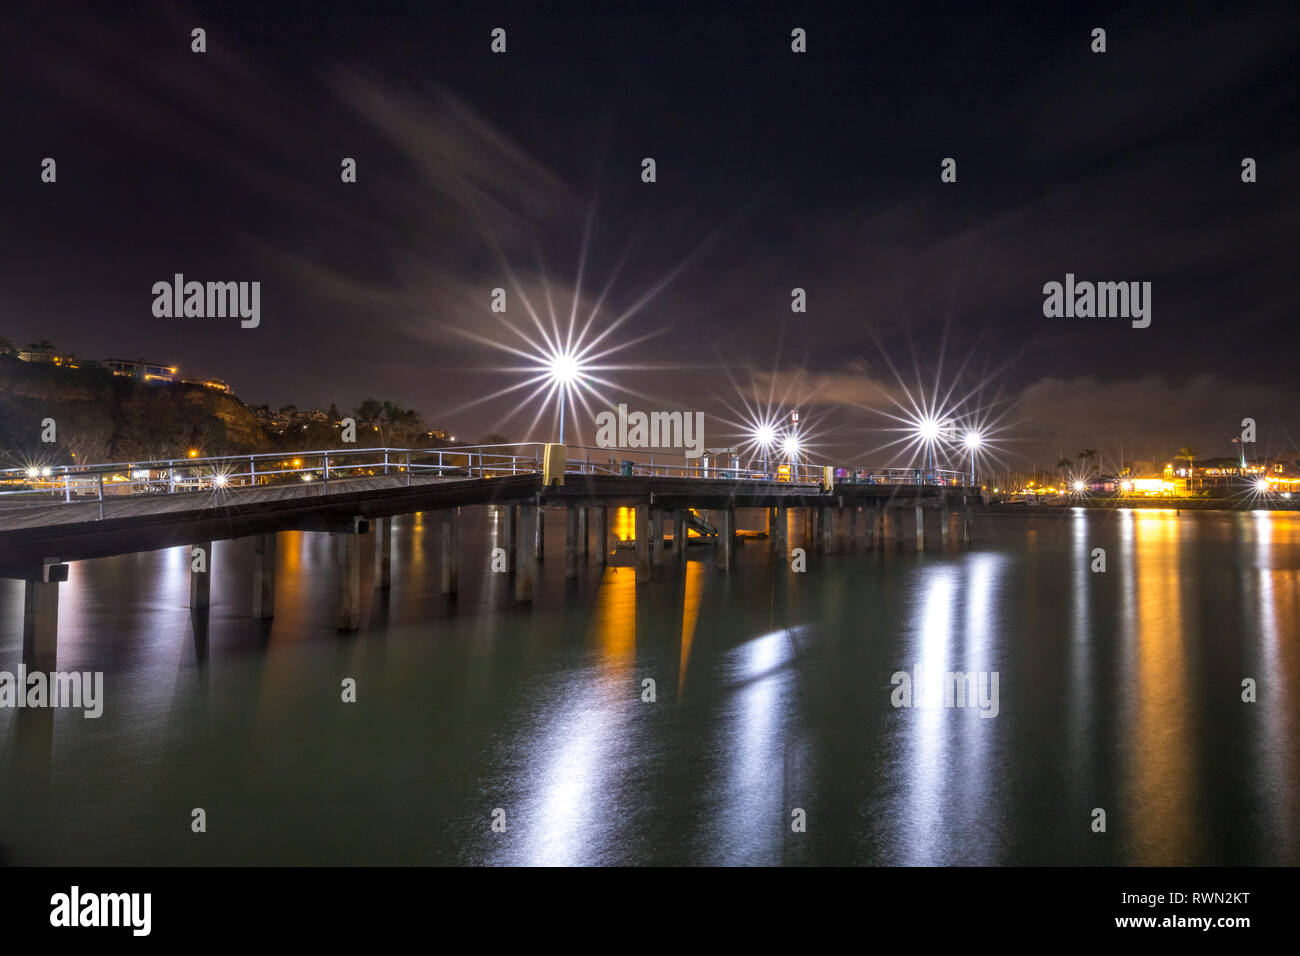 Long exposure photo of Dana Point Pier at night with lights from Dana Point Harbor reflecting in the water, Dana Point, California - Stock Image